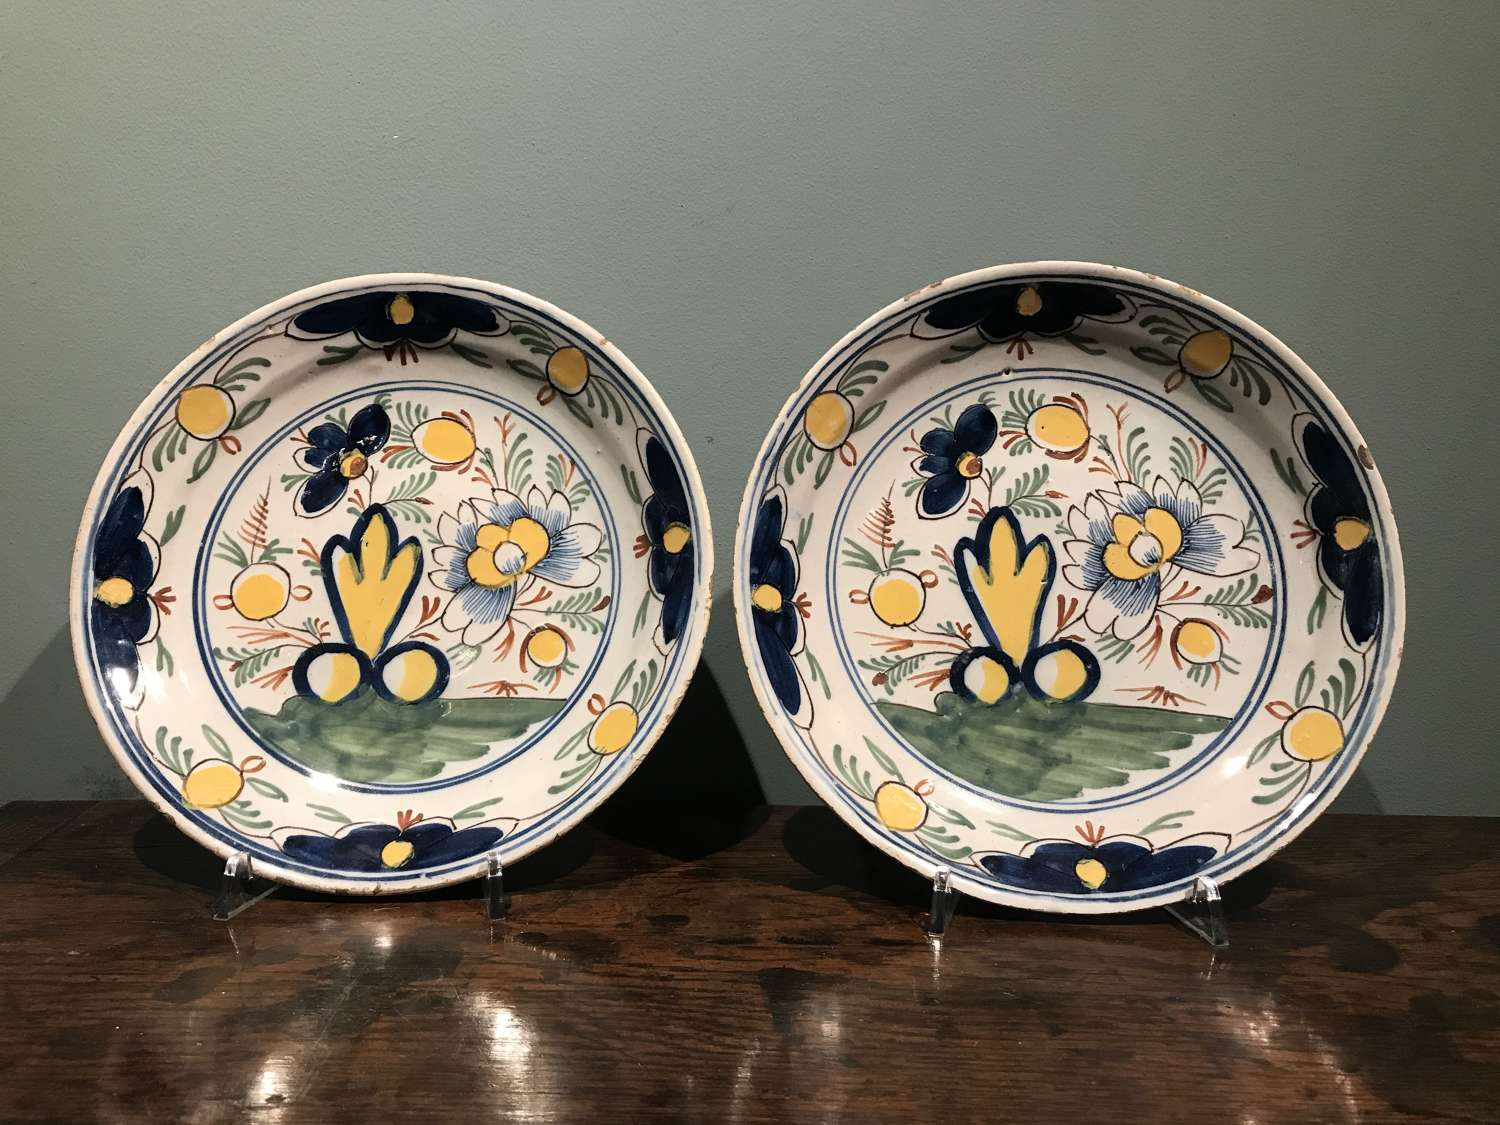 Pair of mid 18th c. Dutch Delft polychrome dishes